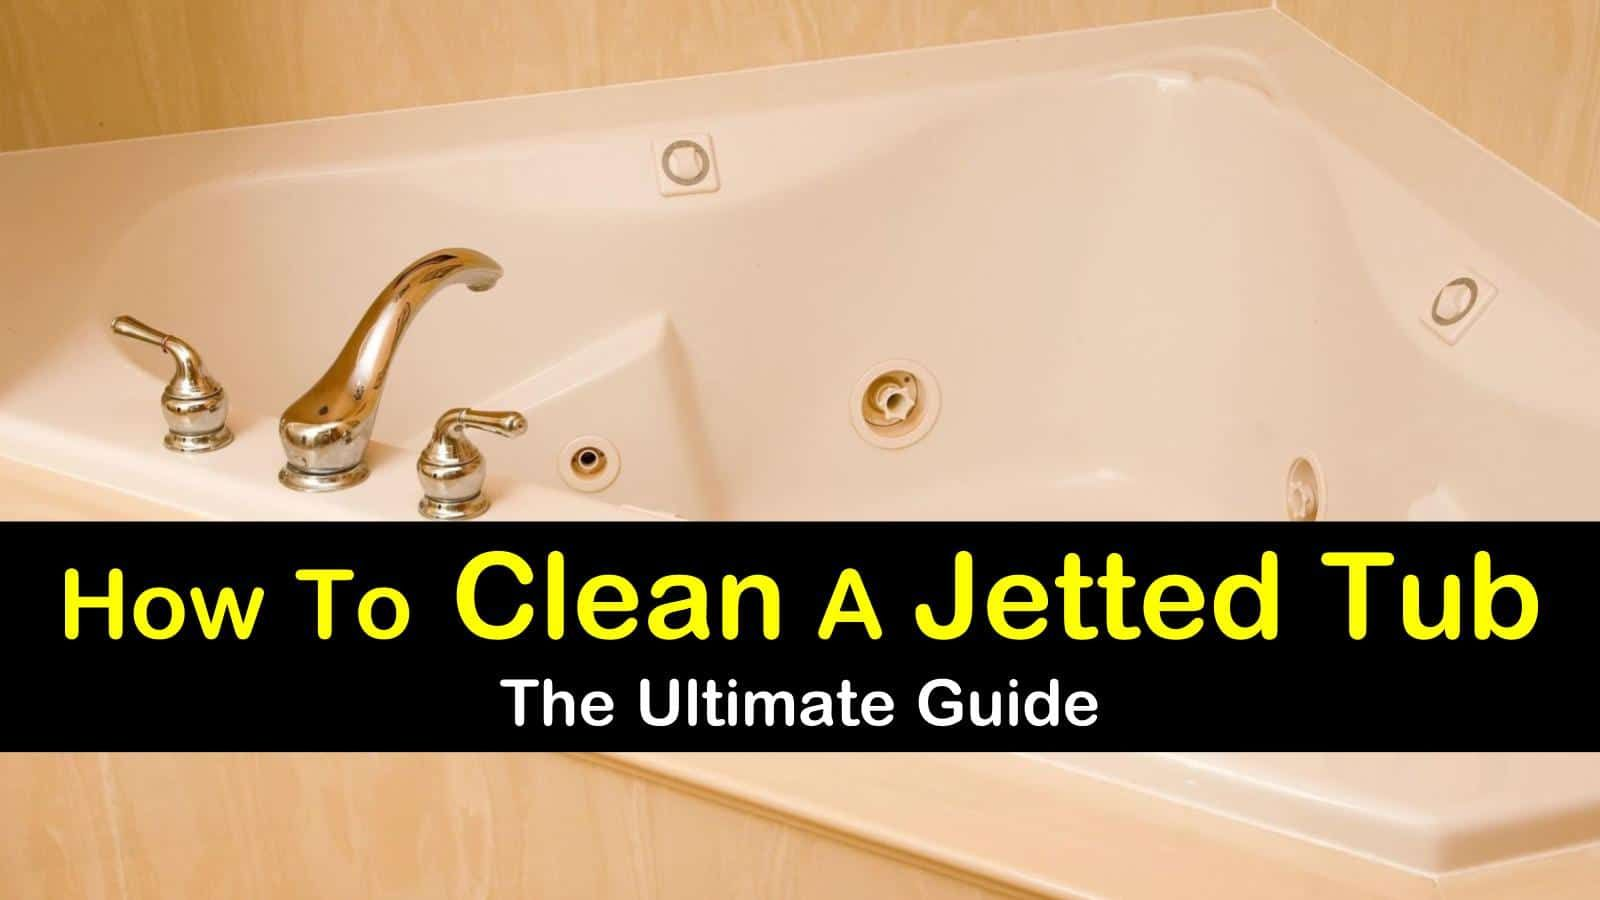 3 Smart Simple Ways To Clean A Jetted Tub Jetted Tub Cleaning